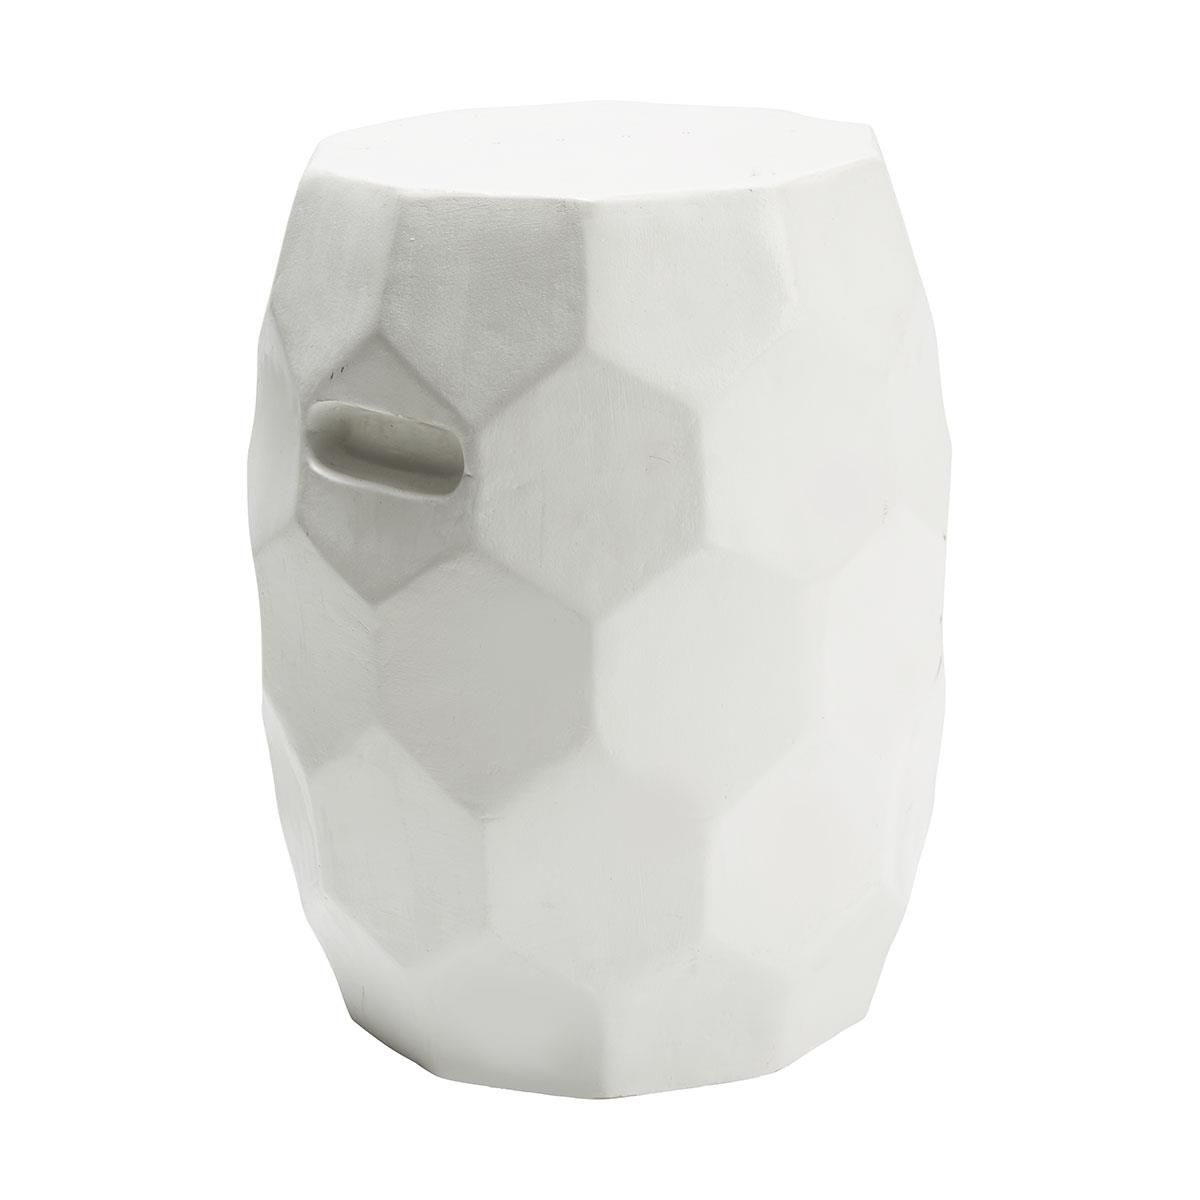 Honeycomb Garden Stool White Kmart